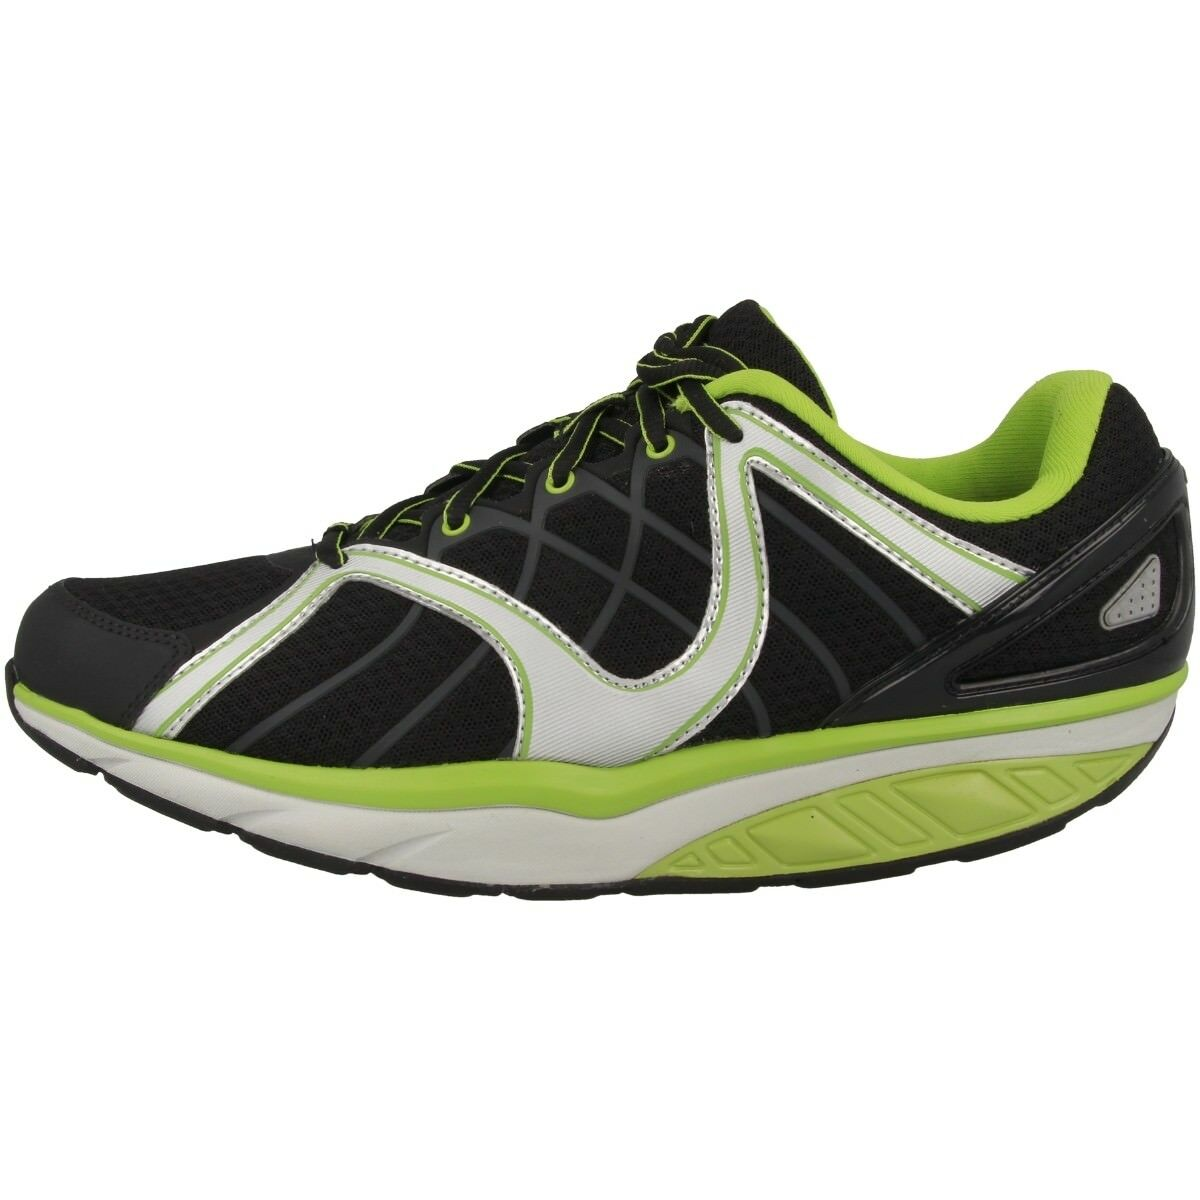 MBT jengo Sport neutral m zapatos caballero fitness salud zapatos 700461-645y